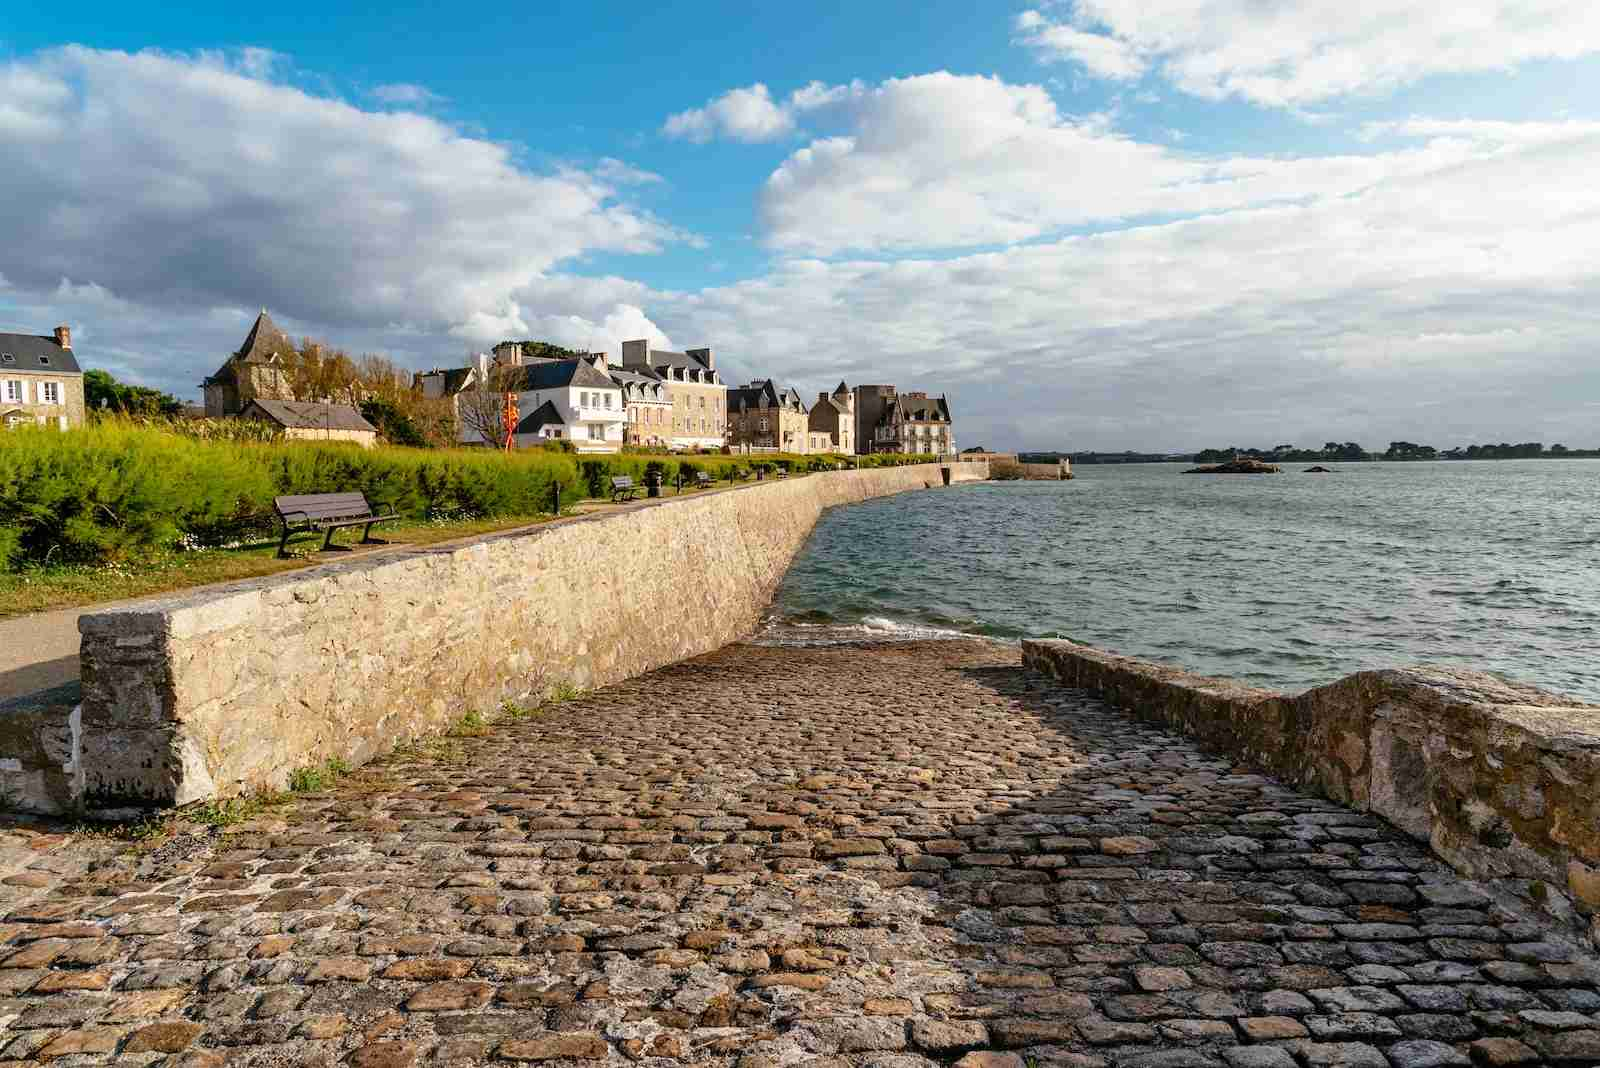 Waterfront of Roscoff on the Ile of Batz. (Photo by JJFarq / Shutterstock)